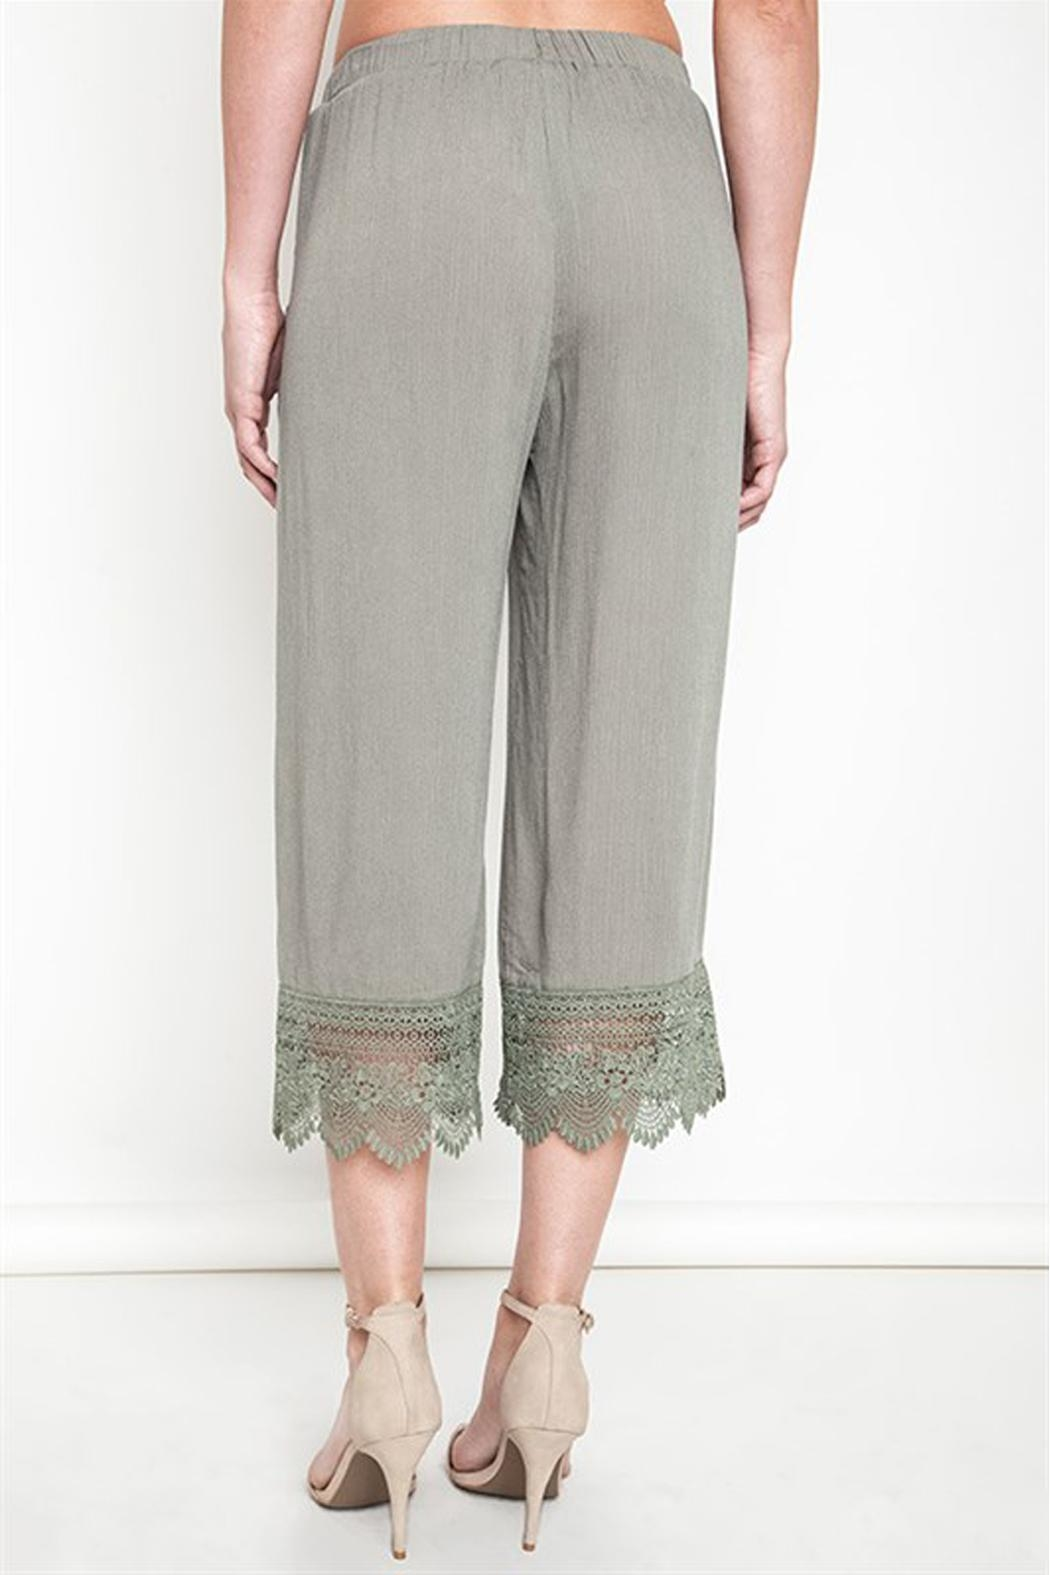 Umgee USA Lace Capri Pants - Front Full Image